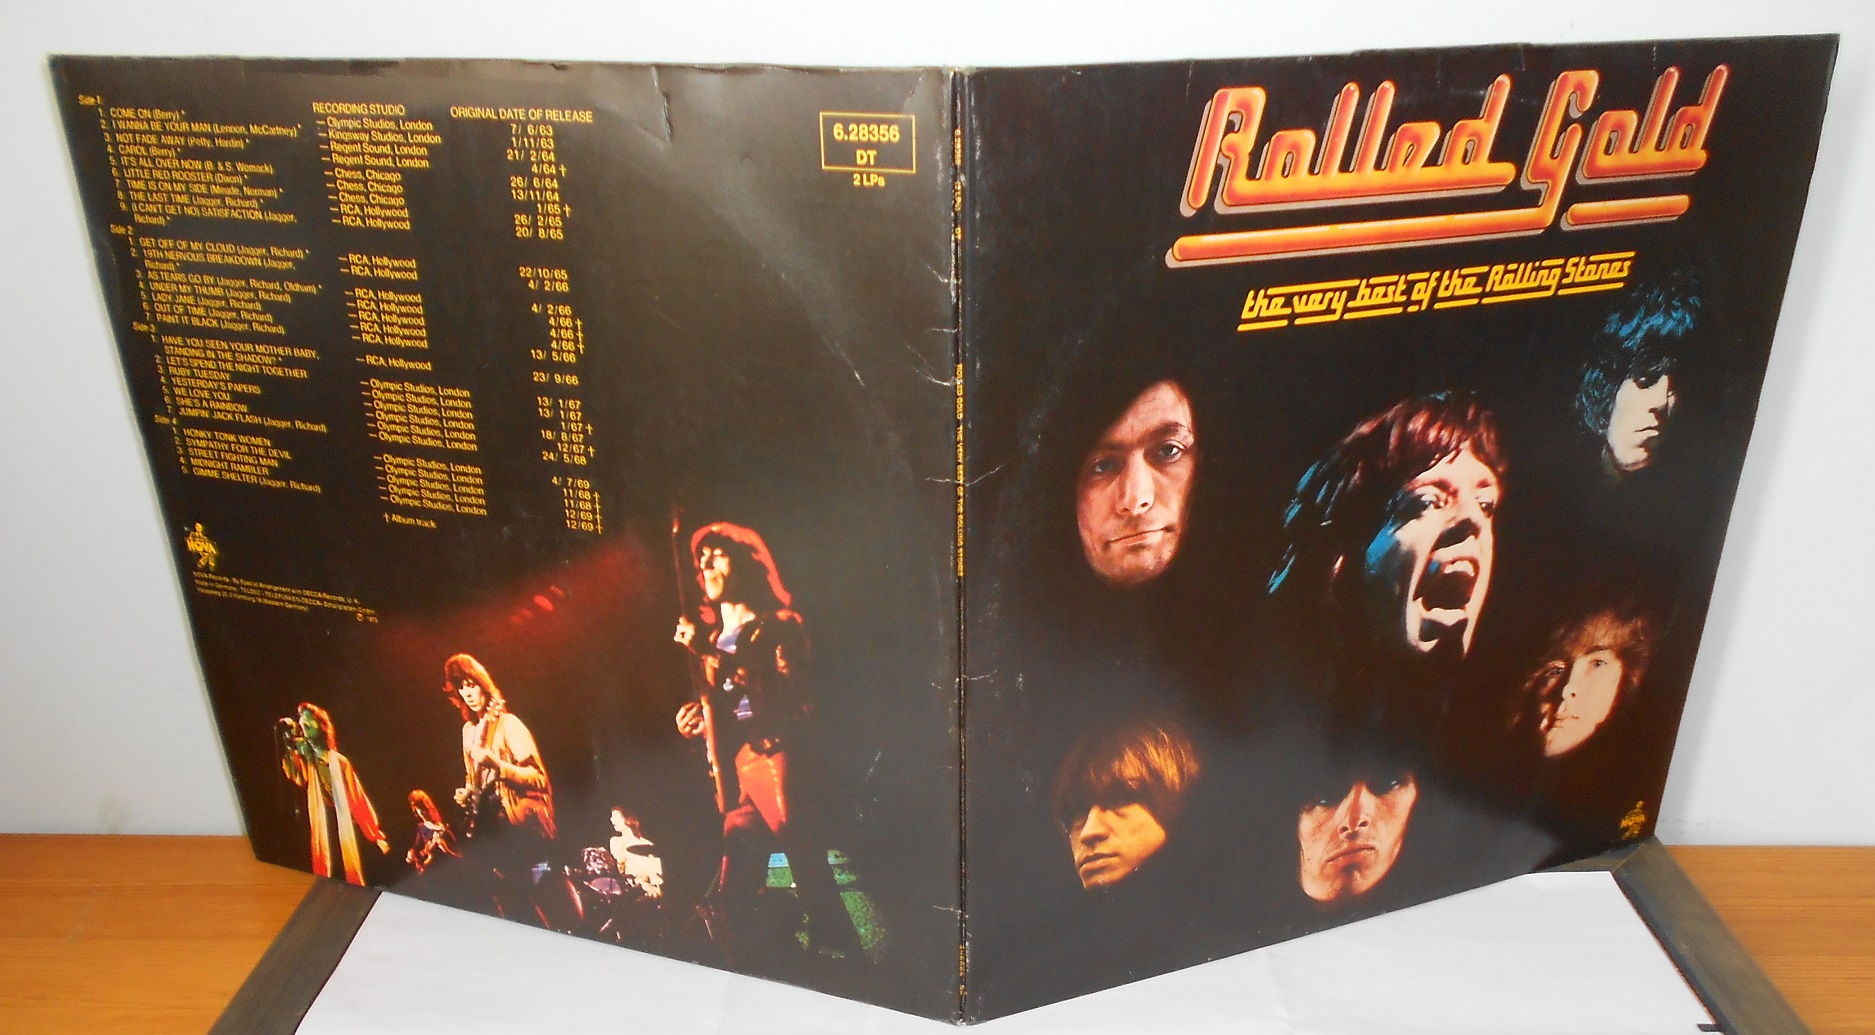 The Rolling Stones ‎– Rolled Gold (The Very Best Of The Rolling Stones) (VG++) (LP)